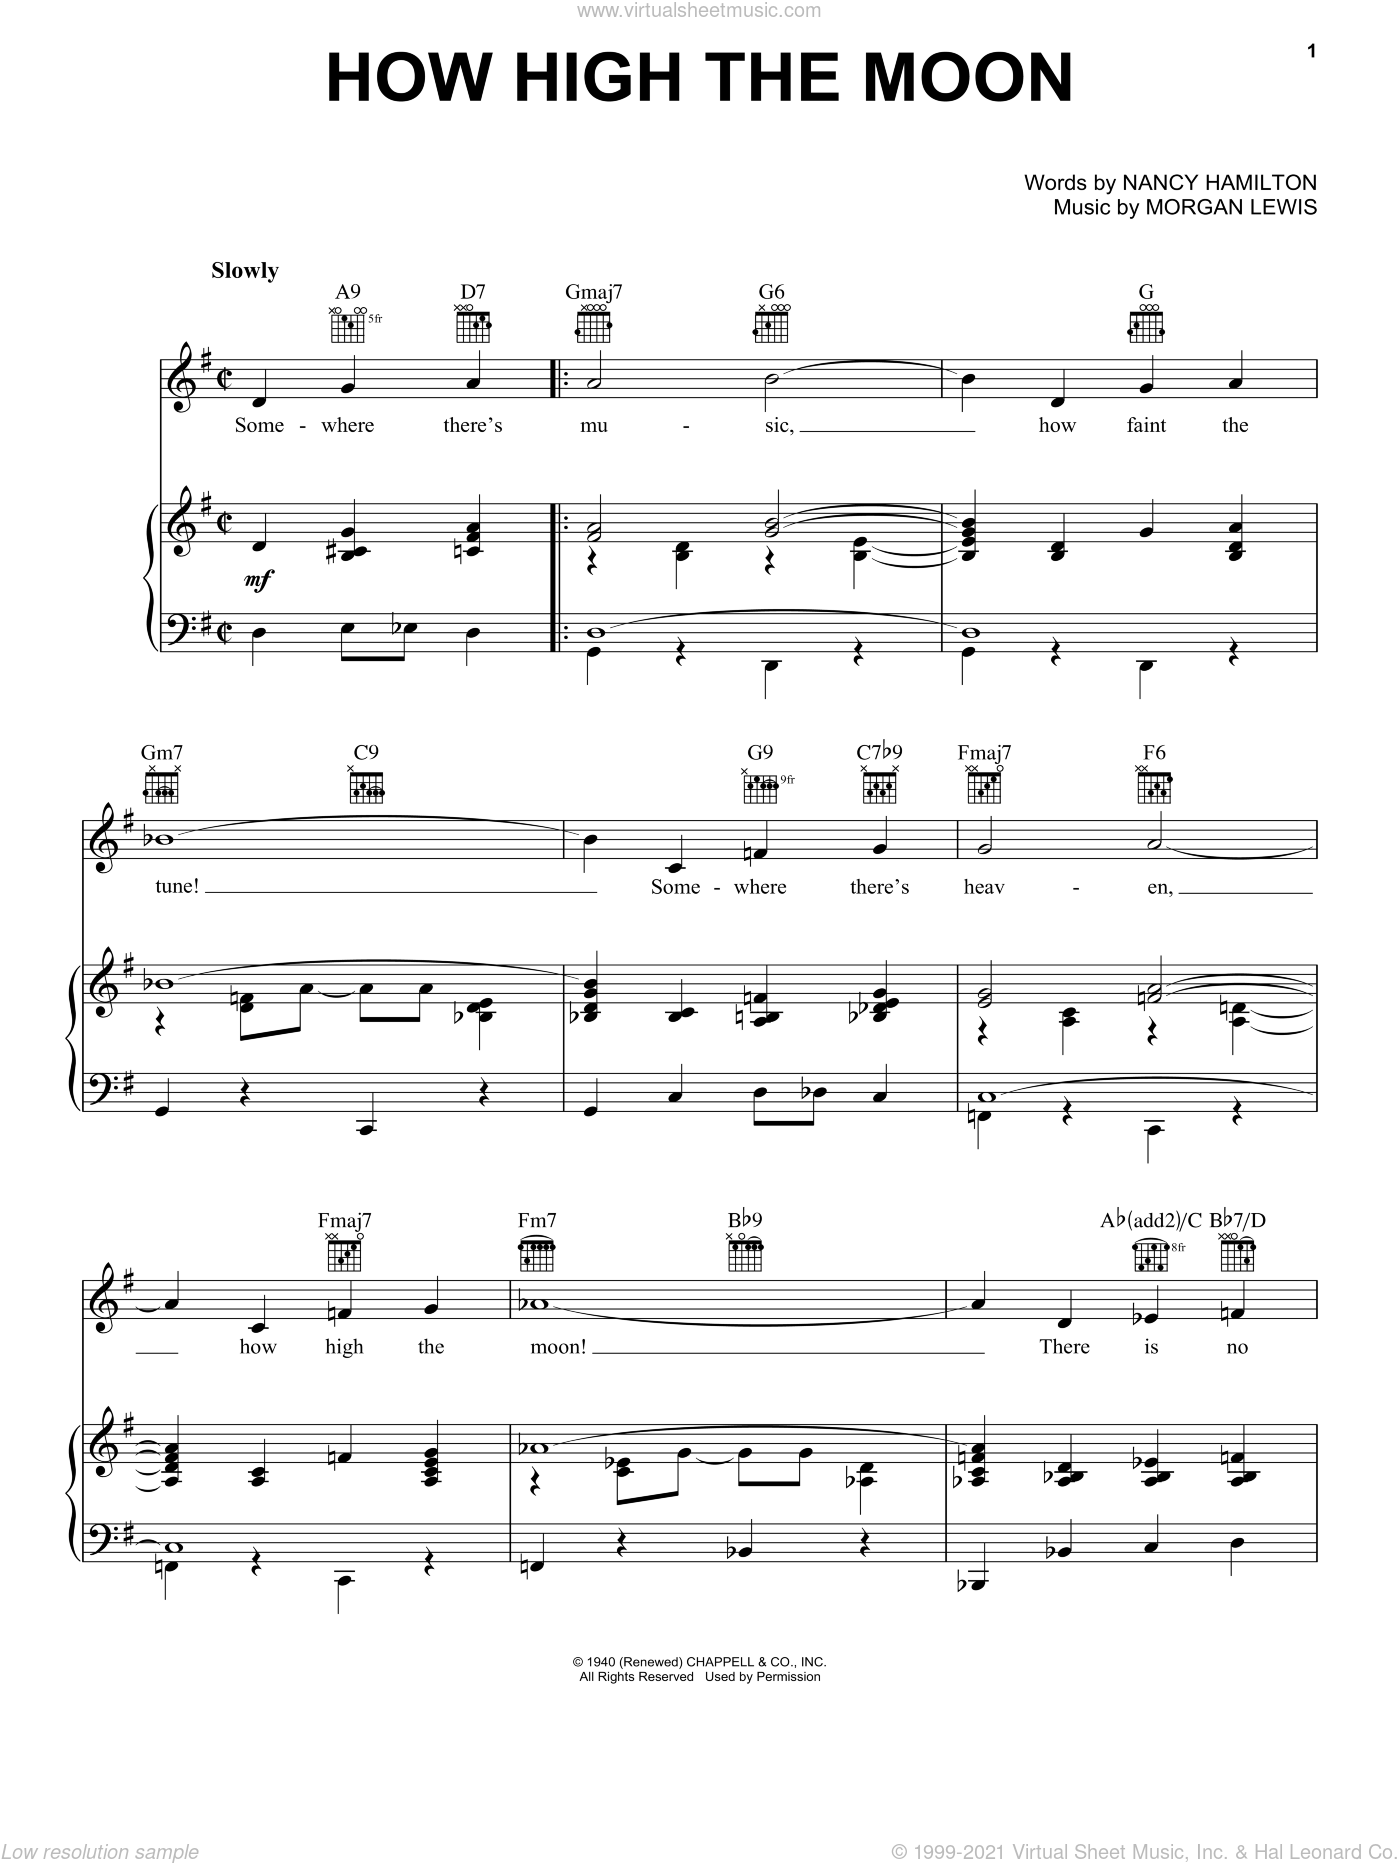 How High The Moon sheet music for voice, piano or guitar by Nancy Hamilton, Les Paul and Morgan Lewis. Score Image Preview.